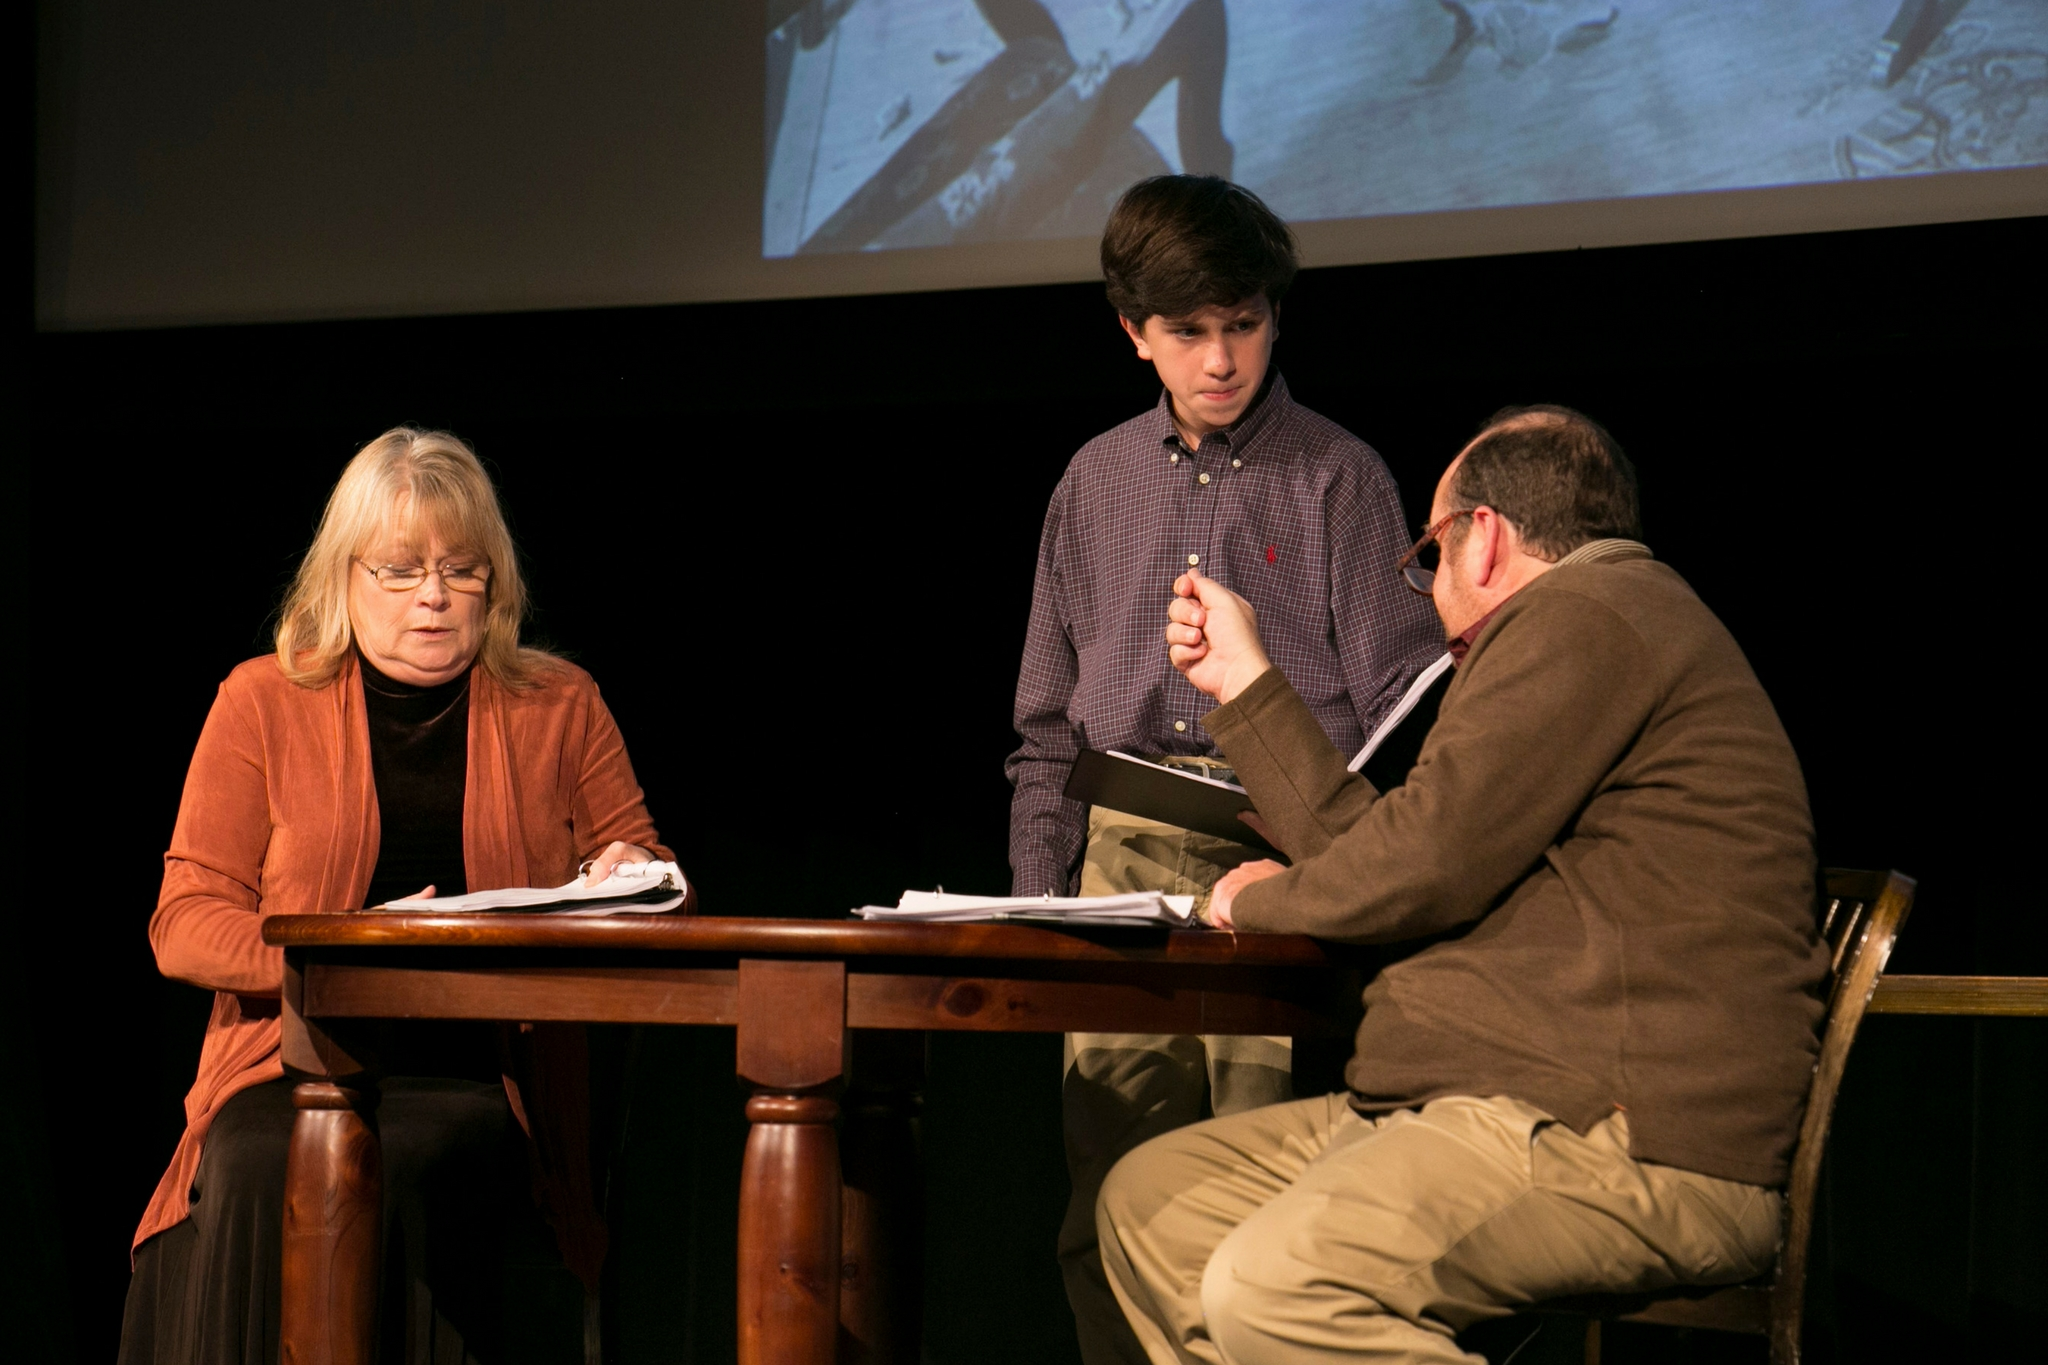 Karen MacDonald (Wife), Seamus Doyle (Boy), and Brandon Whitehead (Husband) in The Informer, Theatre in the Rough, 2017-Photo by Evgenia Eliseeva